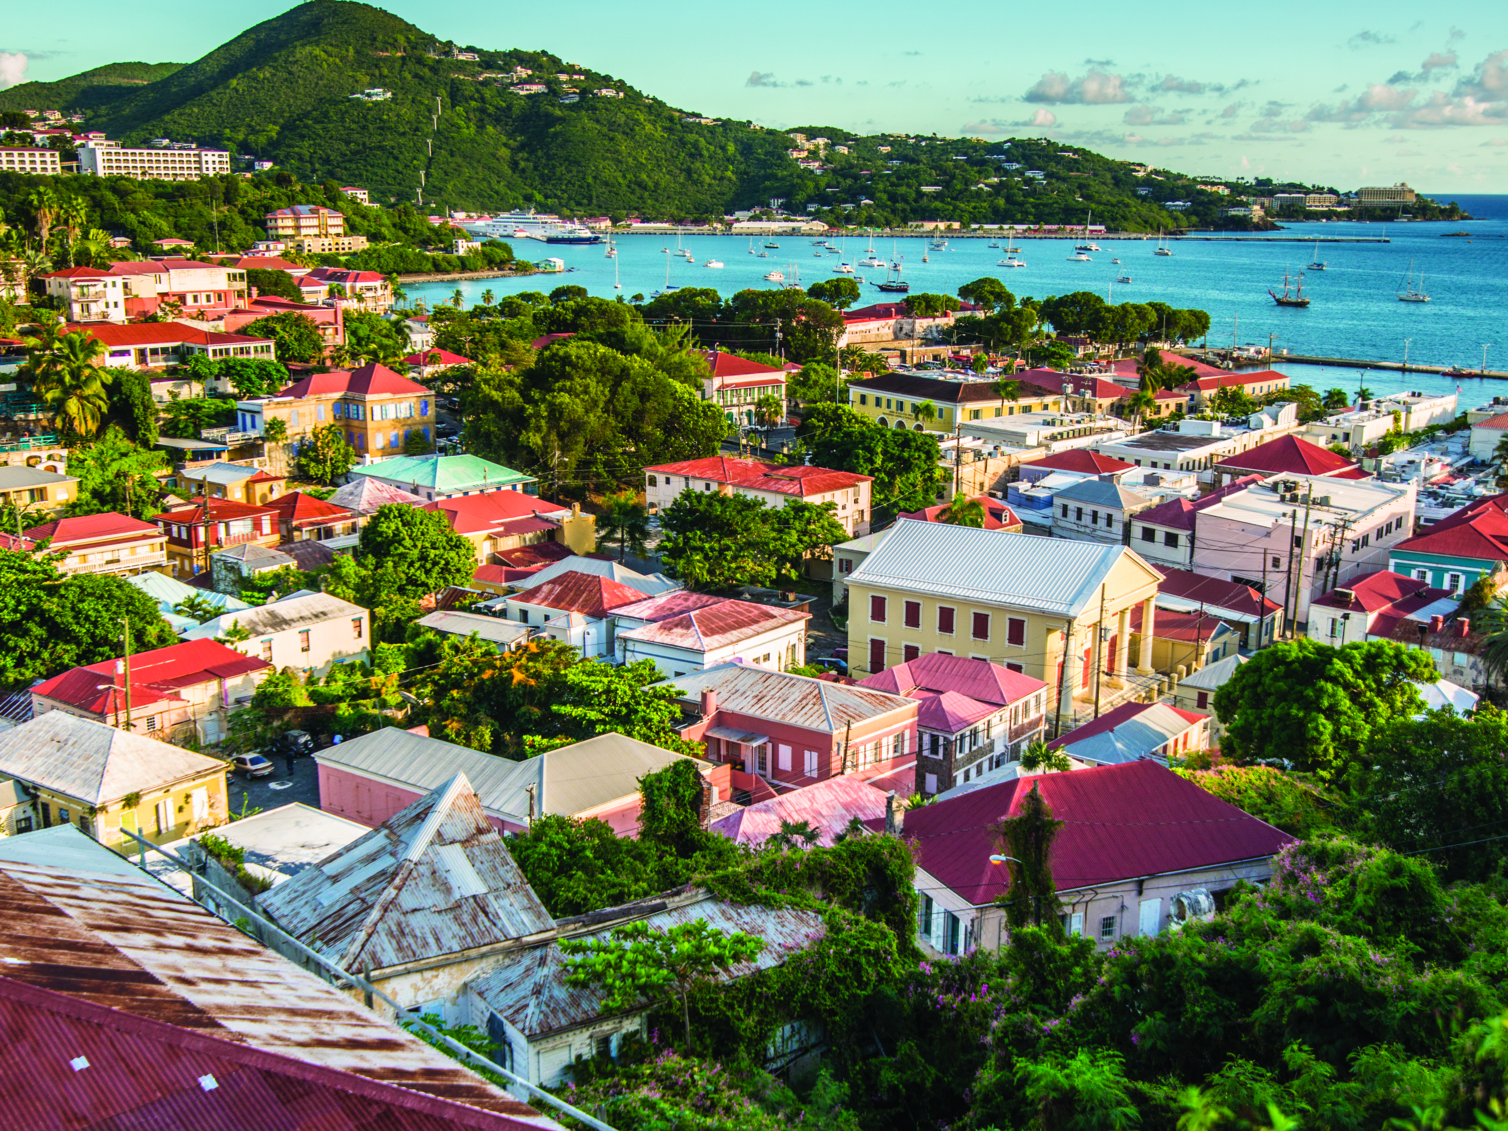 Top Things to Do in St. Thomas on Your Honeymoon